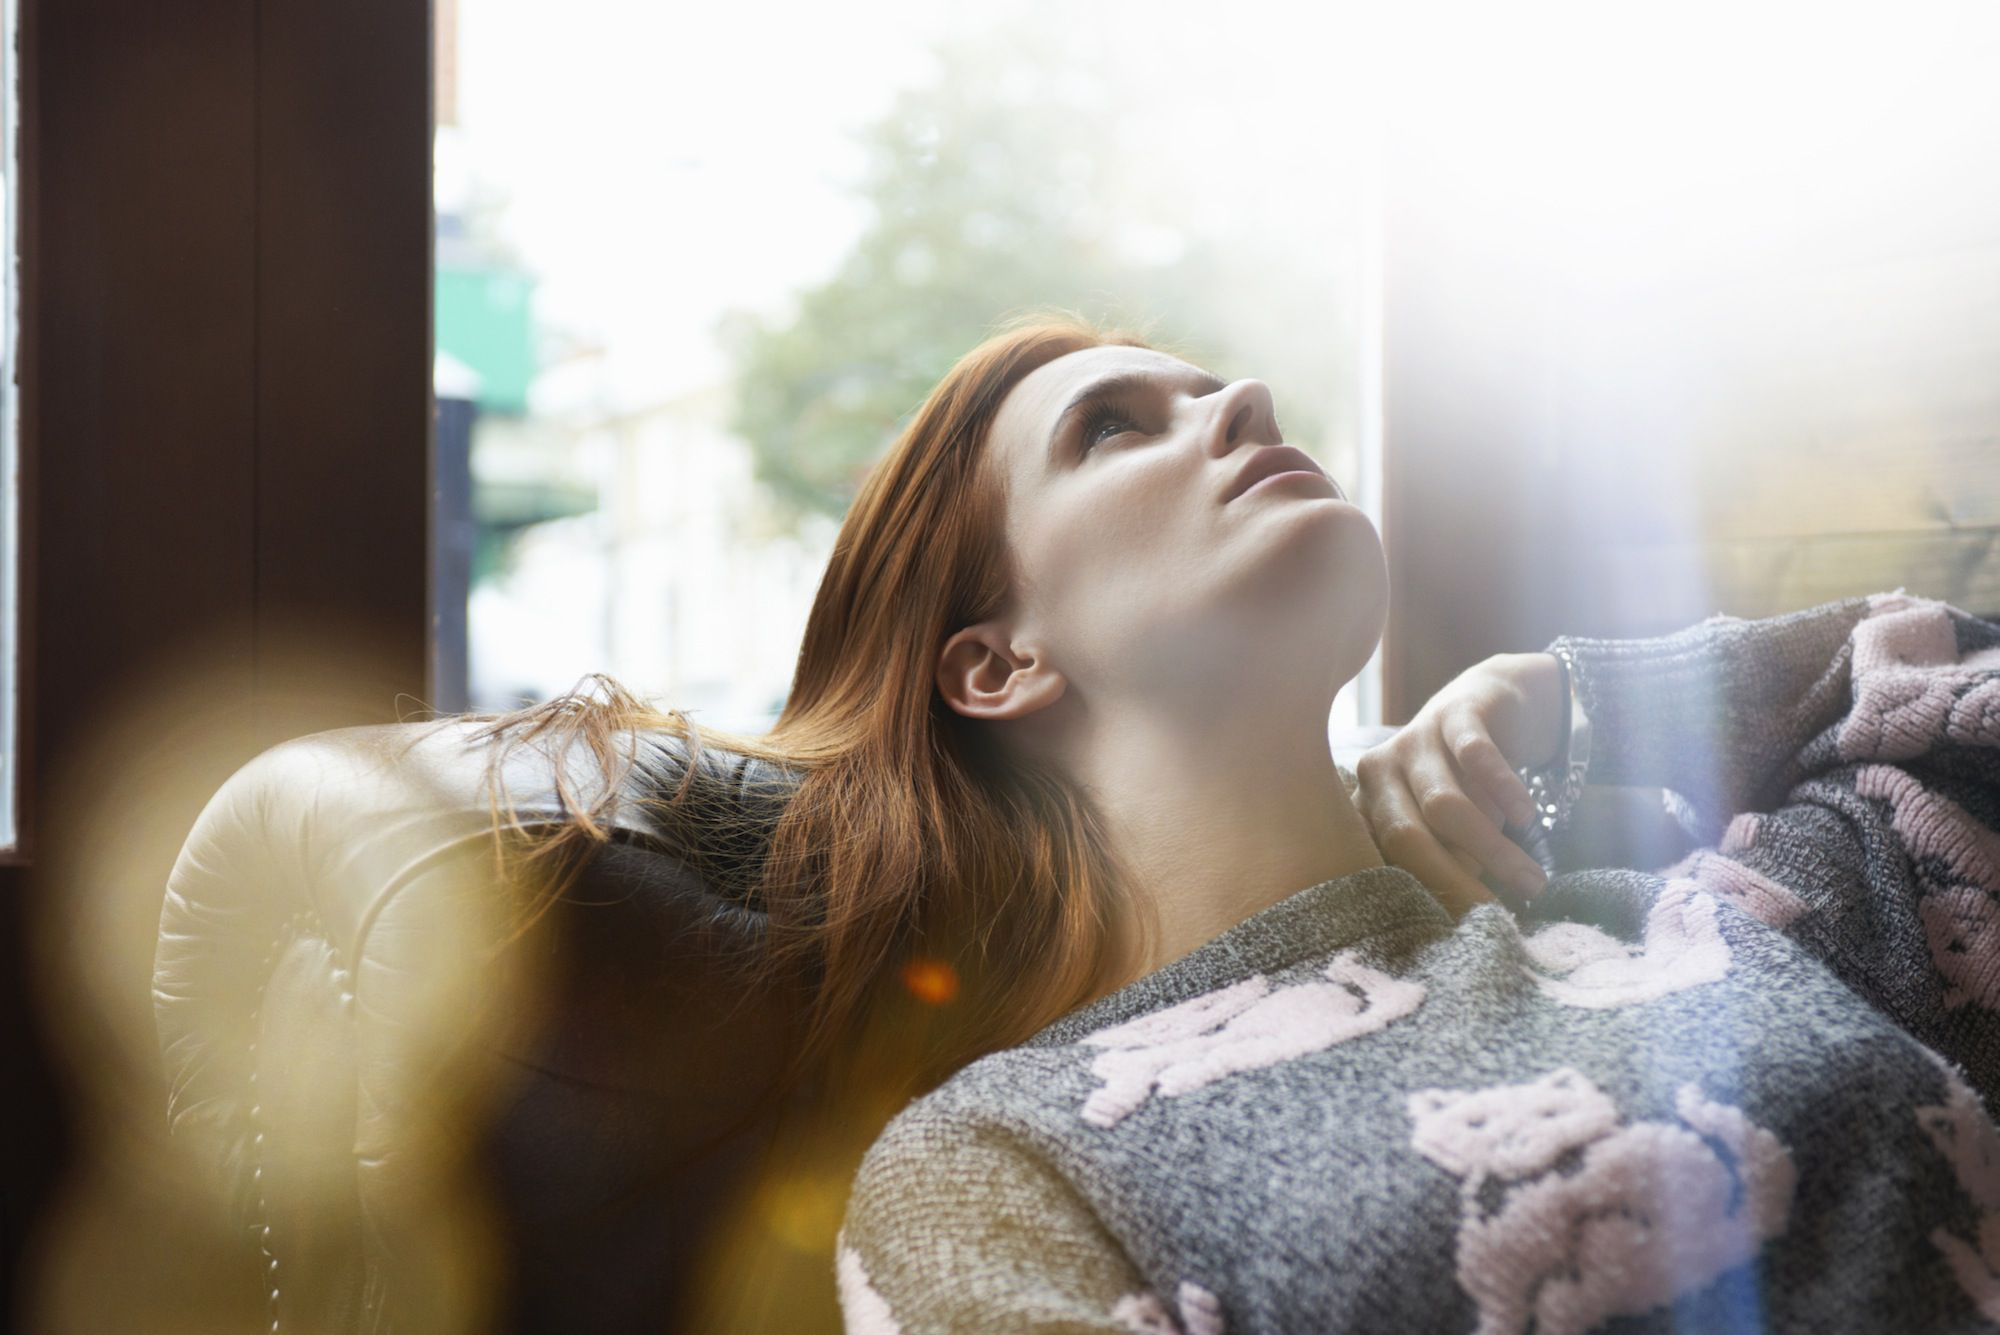 Do You Have PTSD? Here Are 6 Ways to Deal With Intense Emotions